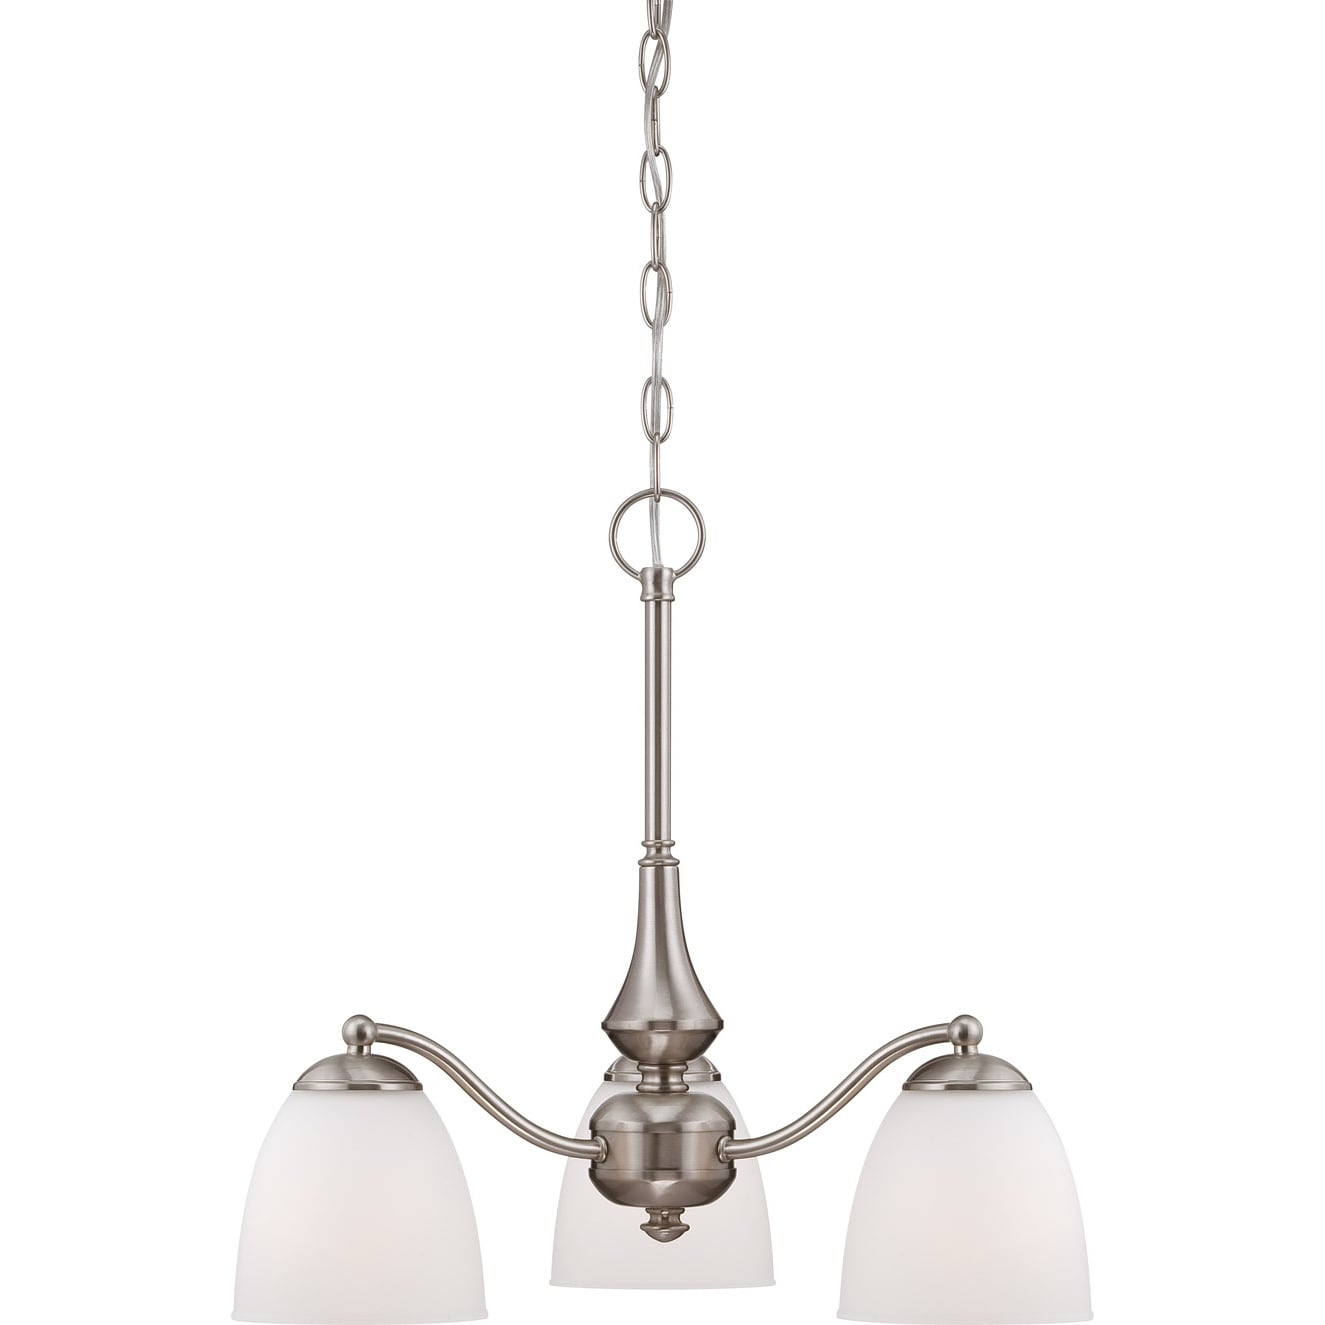 Nuvo 'Patton' 3-light Brushed Nickel Chandelier